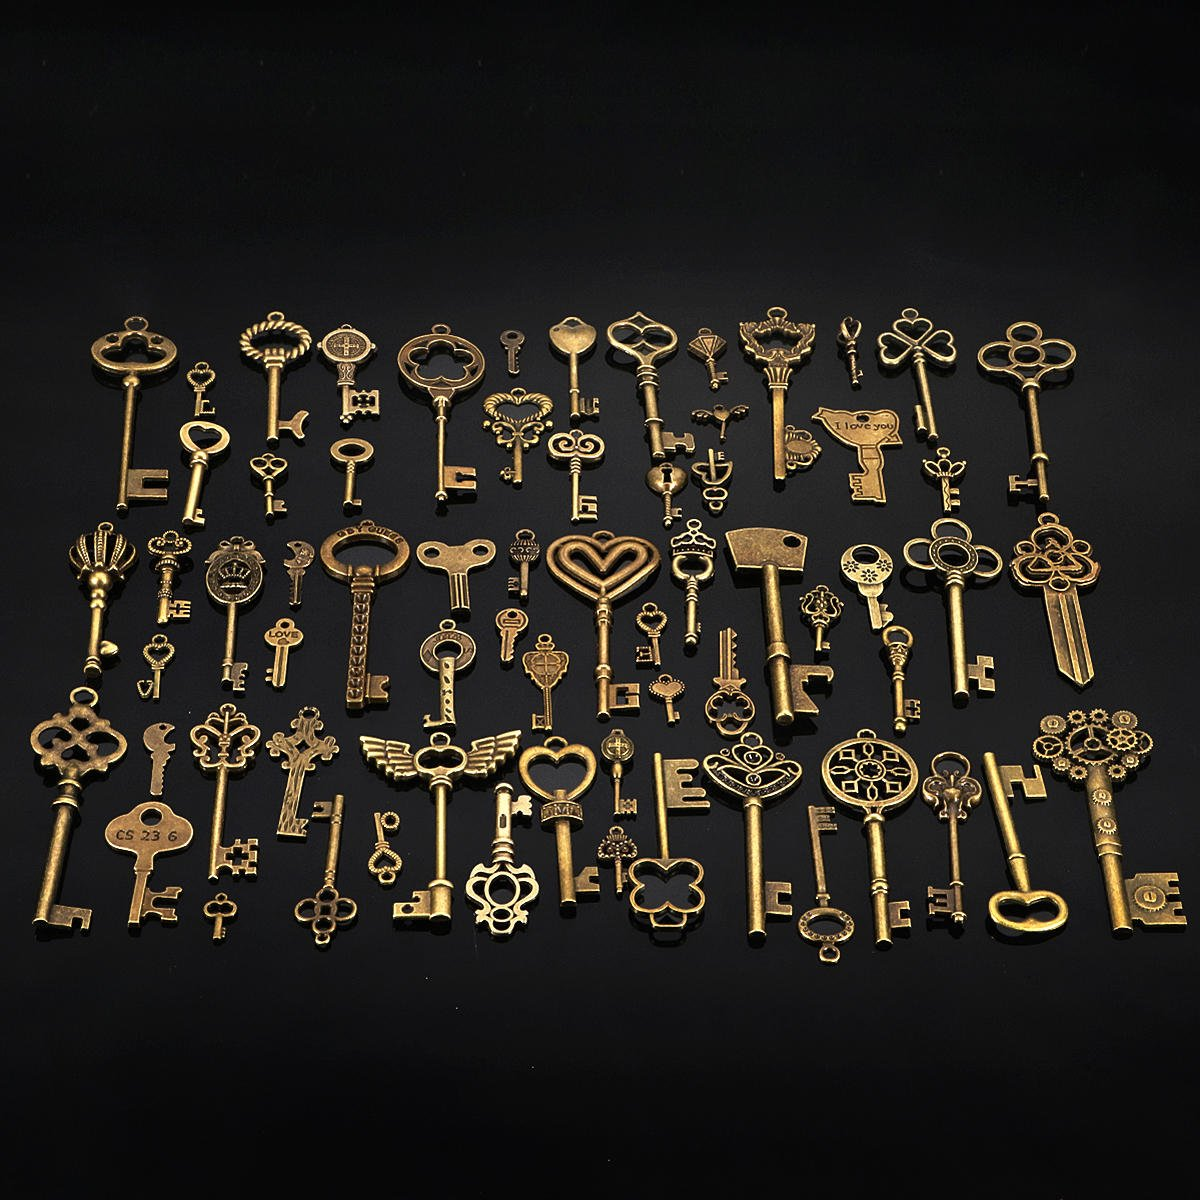 67Pcs Antique Vtg old look Ornate Skeleton Keys Lot Pendant Fancy Heart Bow Favors Jewelry - Hardware & Accessories Decorative Hardware - 67 pcs bronze keys